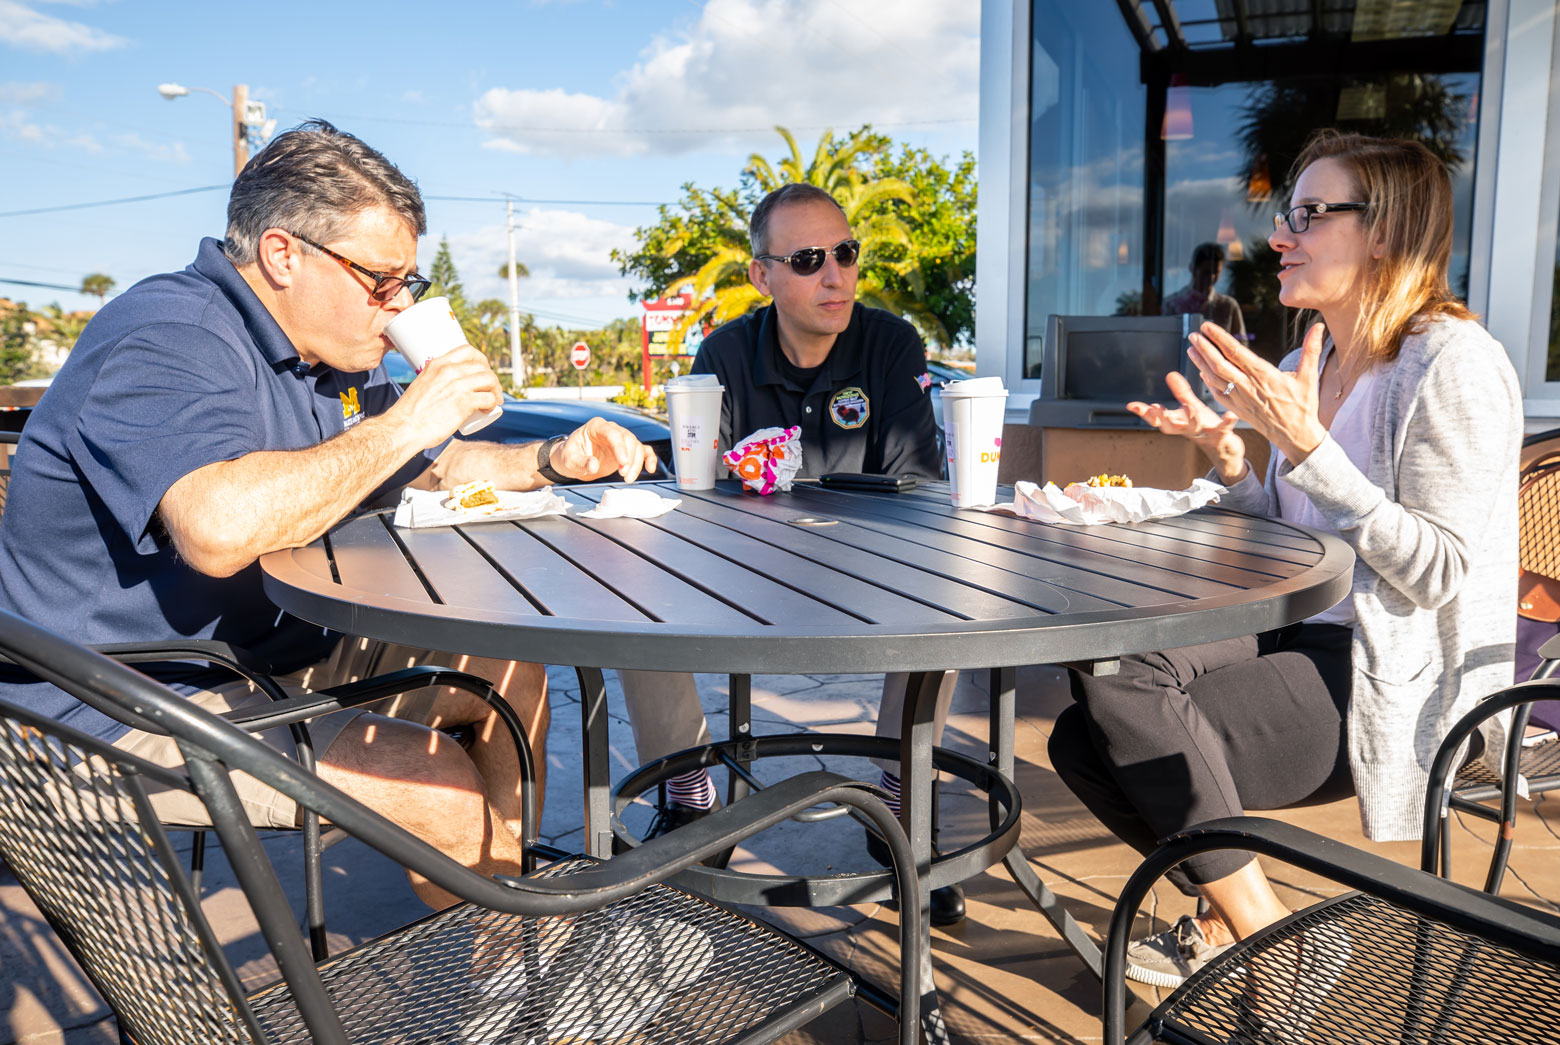 Three adults eat together at a table outside